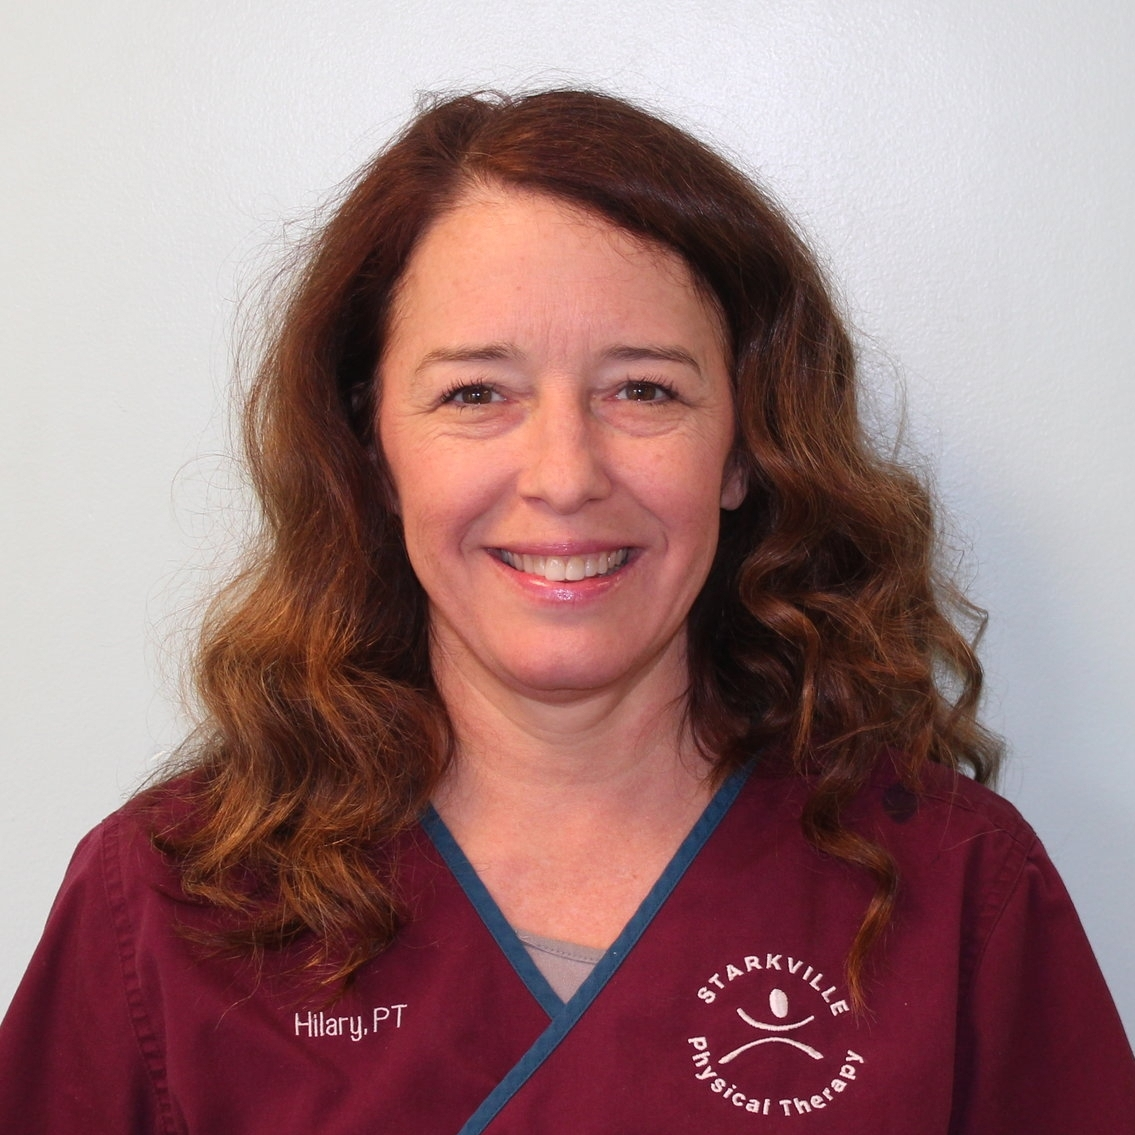 Hilary Rendon - Owner & Physical TherapistHilary has served the public since 1992 in Mississippi, Alabama and Germany. An experienced physical therapist and dedicated member of the Starkville community, she has worked in several venues including home health, nursing home and student health, and has been in private practice since 2006.Hilary has a special interest in orthopedics, spinal manipulation, chronic pain syndromes and general conditioning. She strives to ensure each patient receives a specialized treatment plan to include manual therapy as well as a home exercise program.Hilary is certified in ASTYM and Dry Point Needling. She is also trained in manual treatment methods to include Primal Reflex Relief Technique, Total Motion Release, Maitland for spine and peripheral joints, and TMD (Temporomandibular joint disorders). She is a member of the American Physical Therapy Association, the Mississippi Physical Therapy Association and the Private Practice Section of APTA.